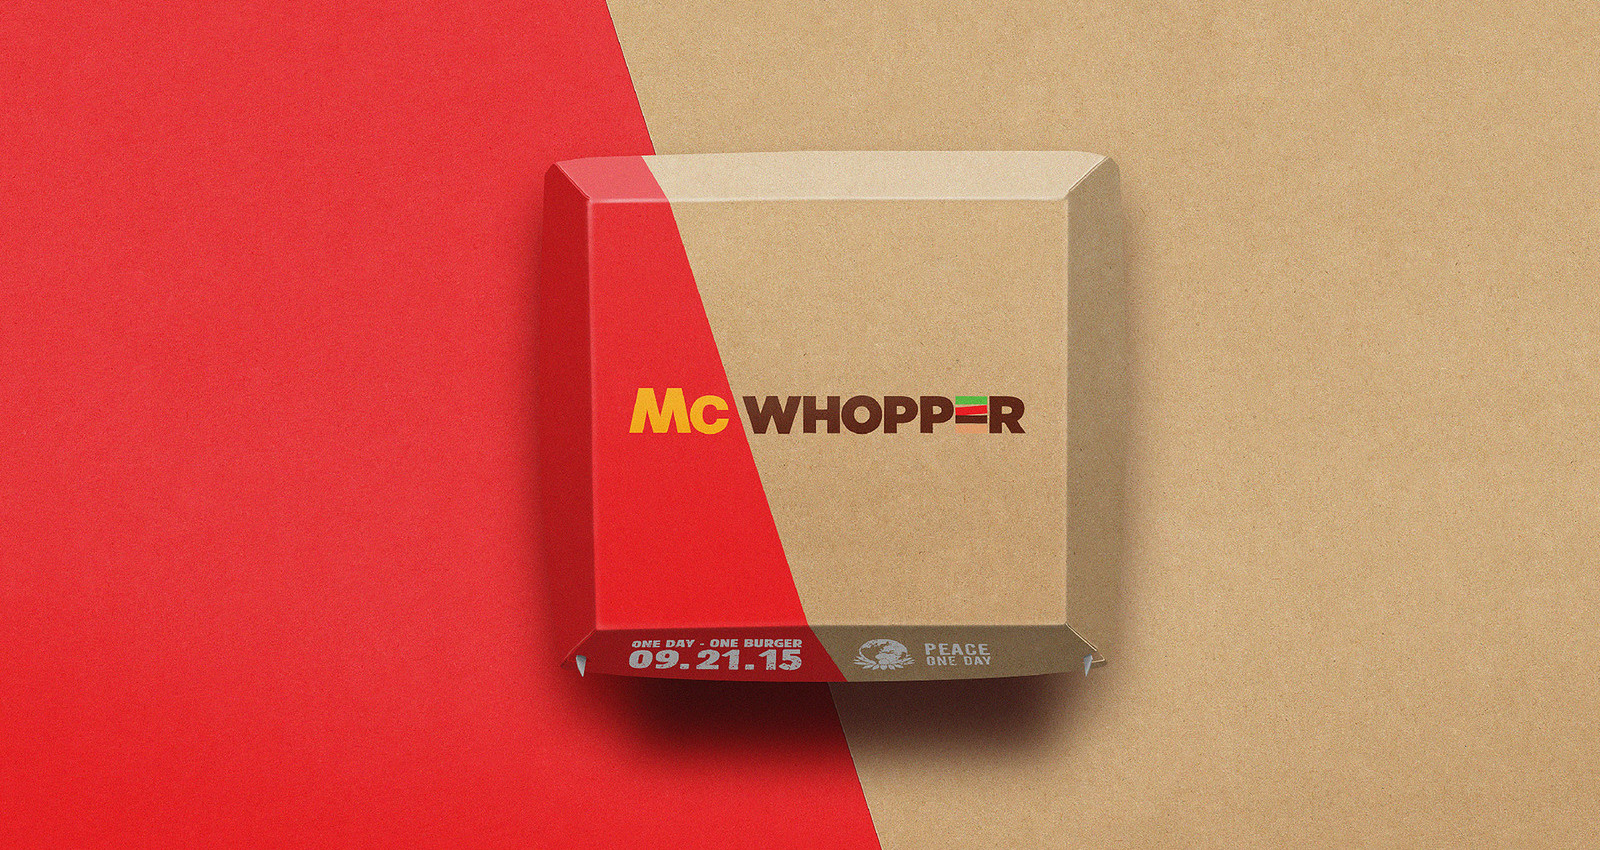 The McWhopper Proposal